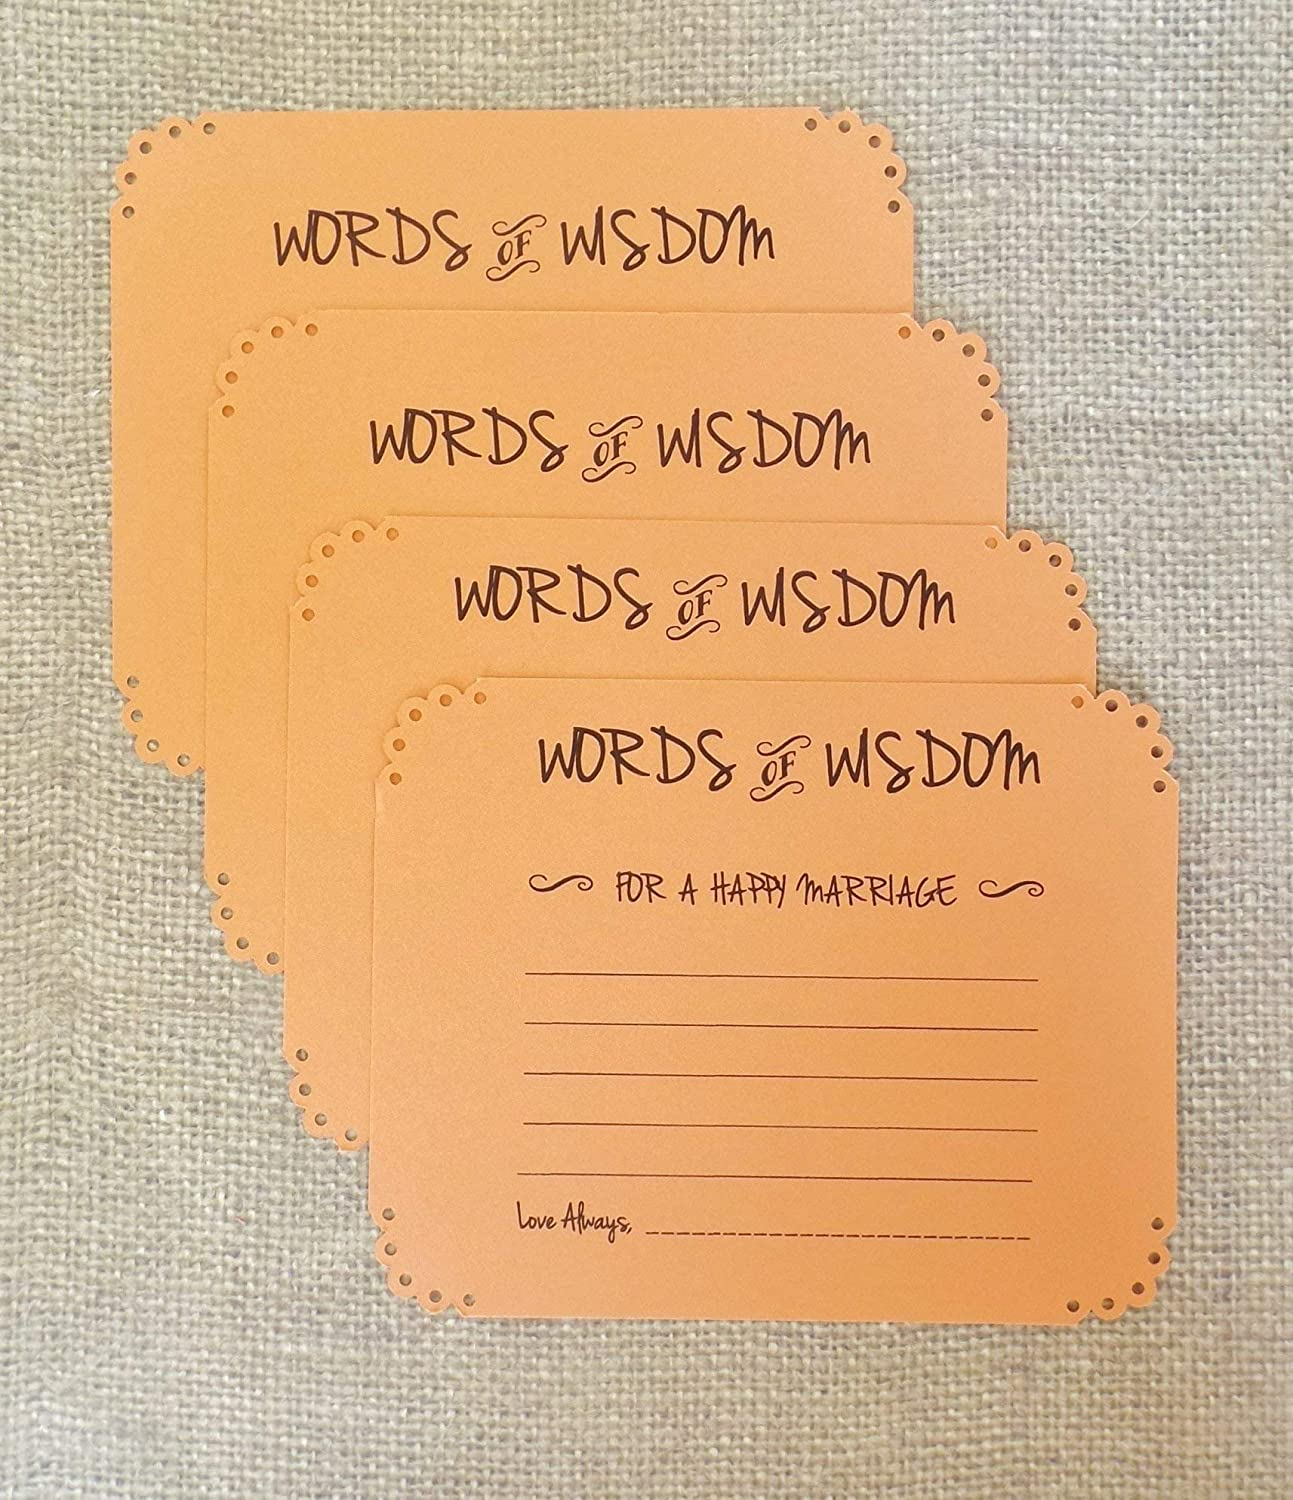 Orange Words of Wisdom Marriage Advice Cards Wedding Bridal Shower Wishes Guest Book Set of 20